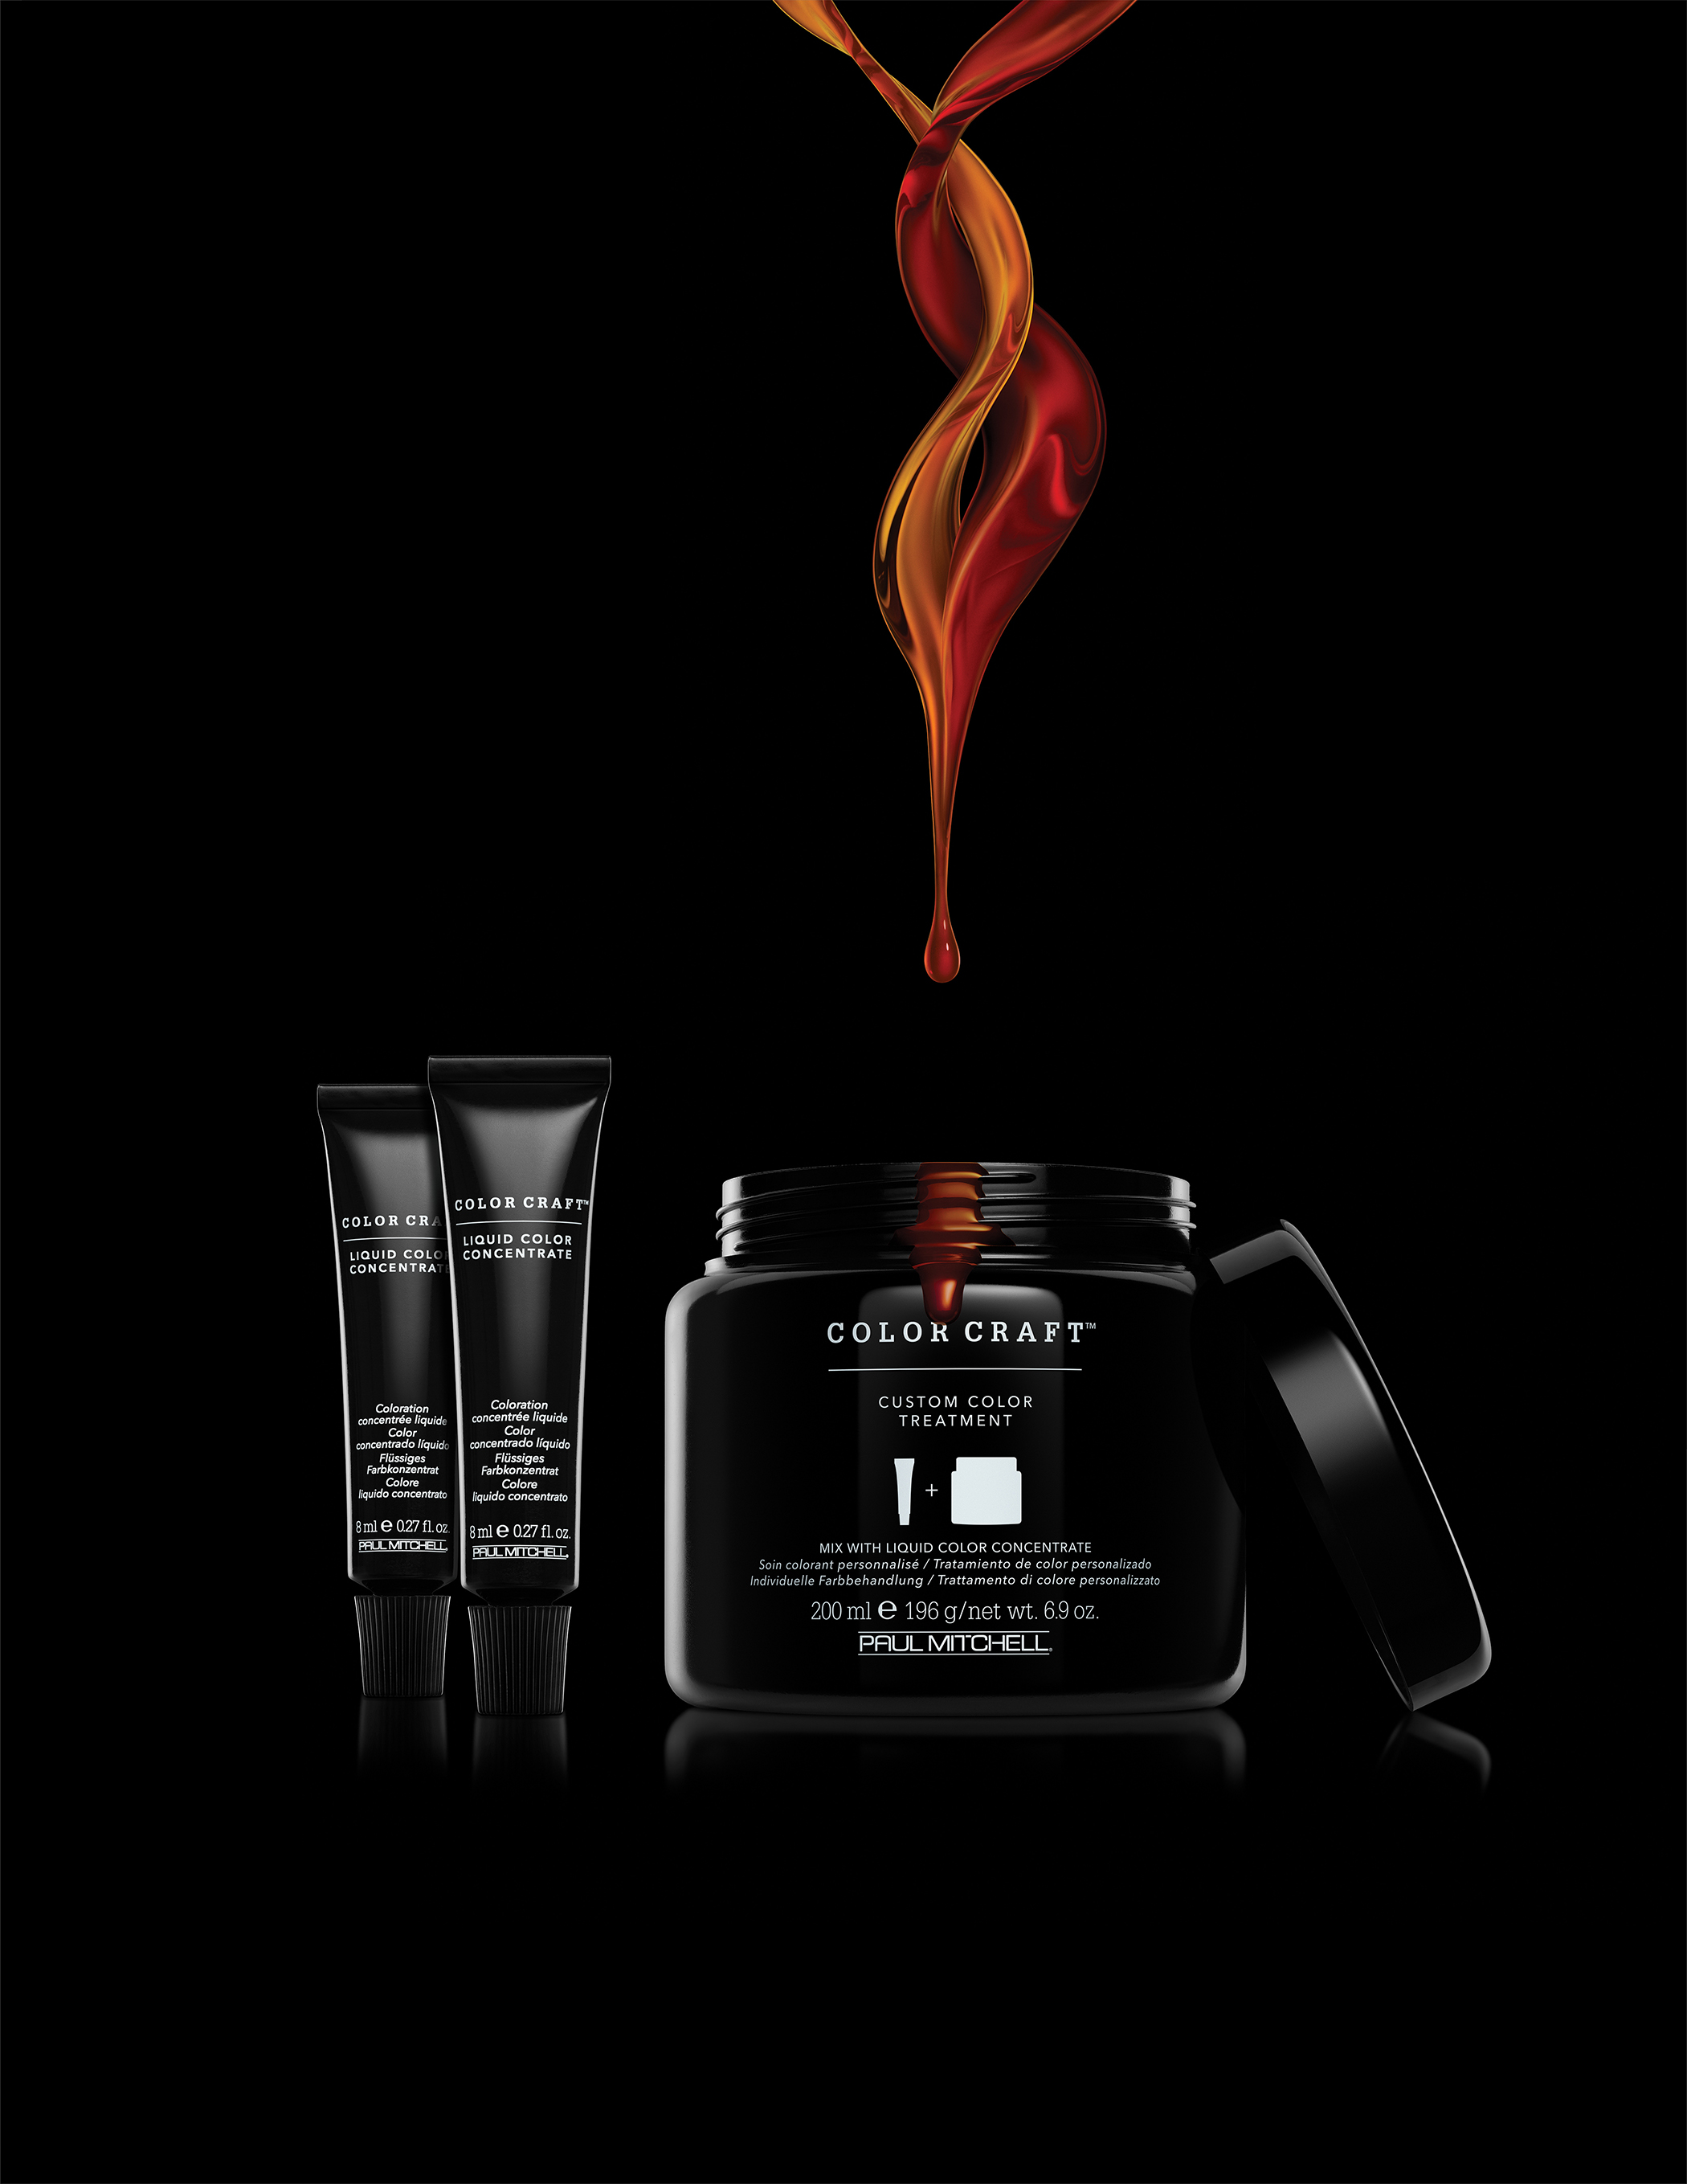 color craft the latest in color innovation john paul mitchell